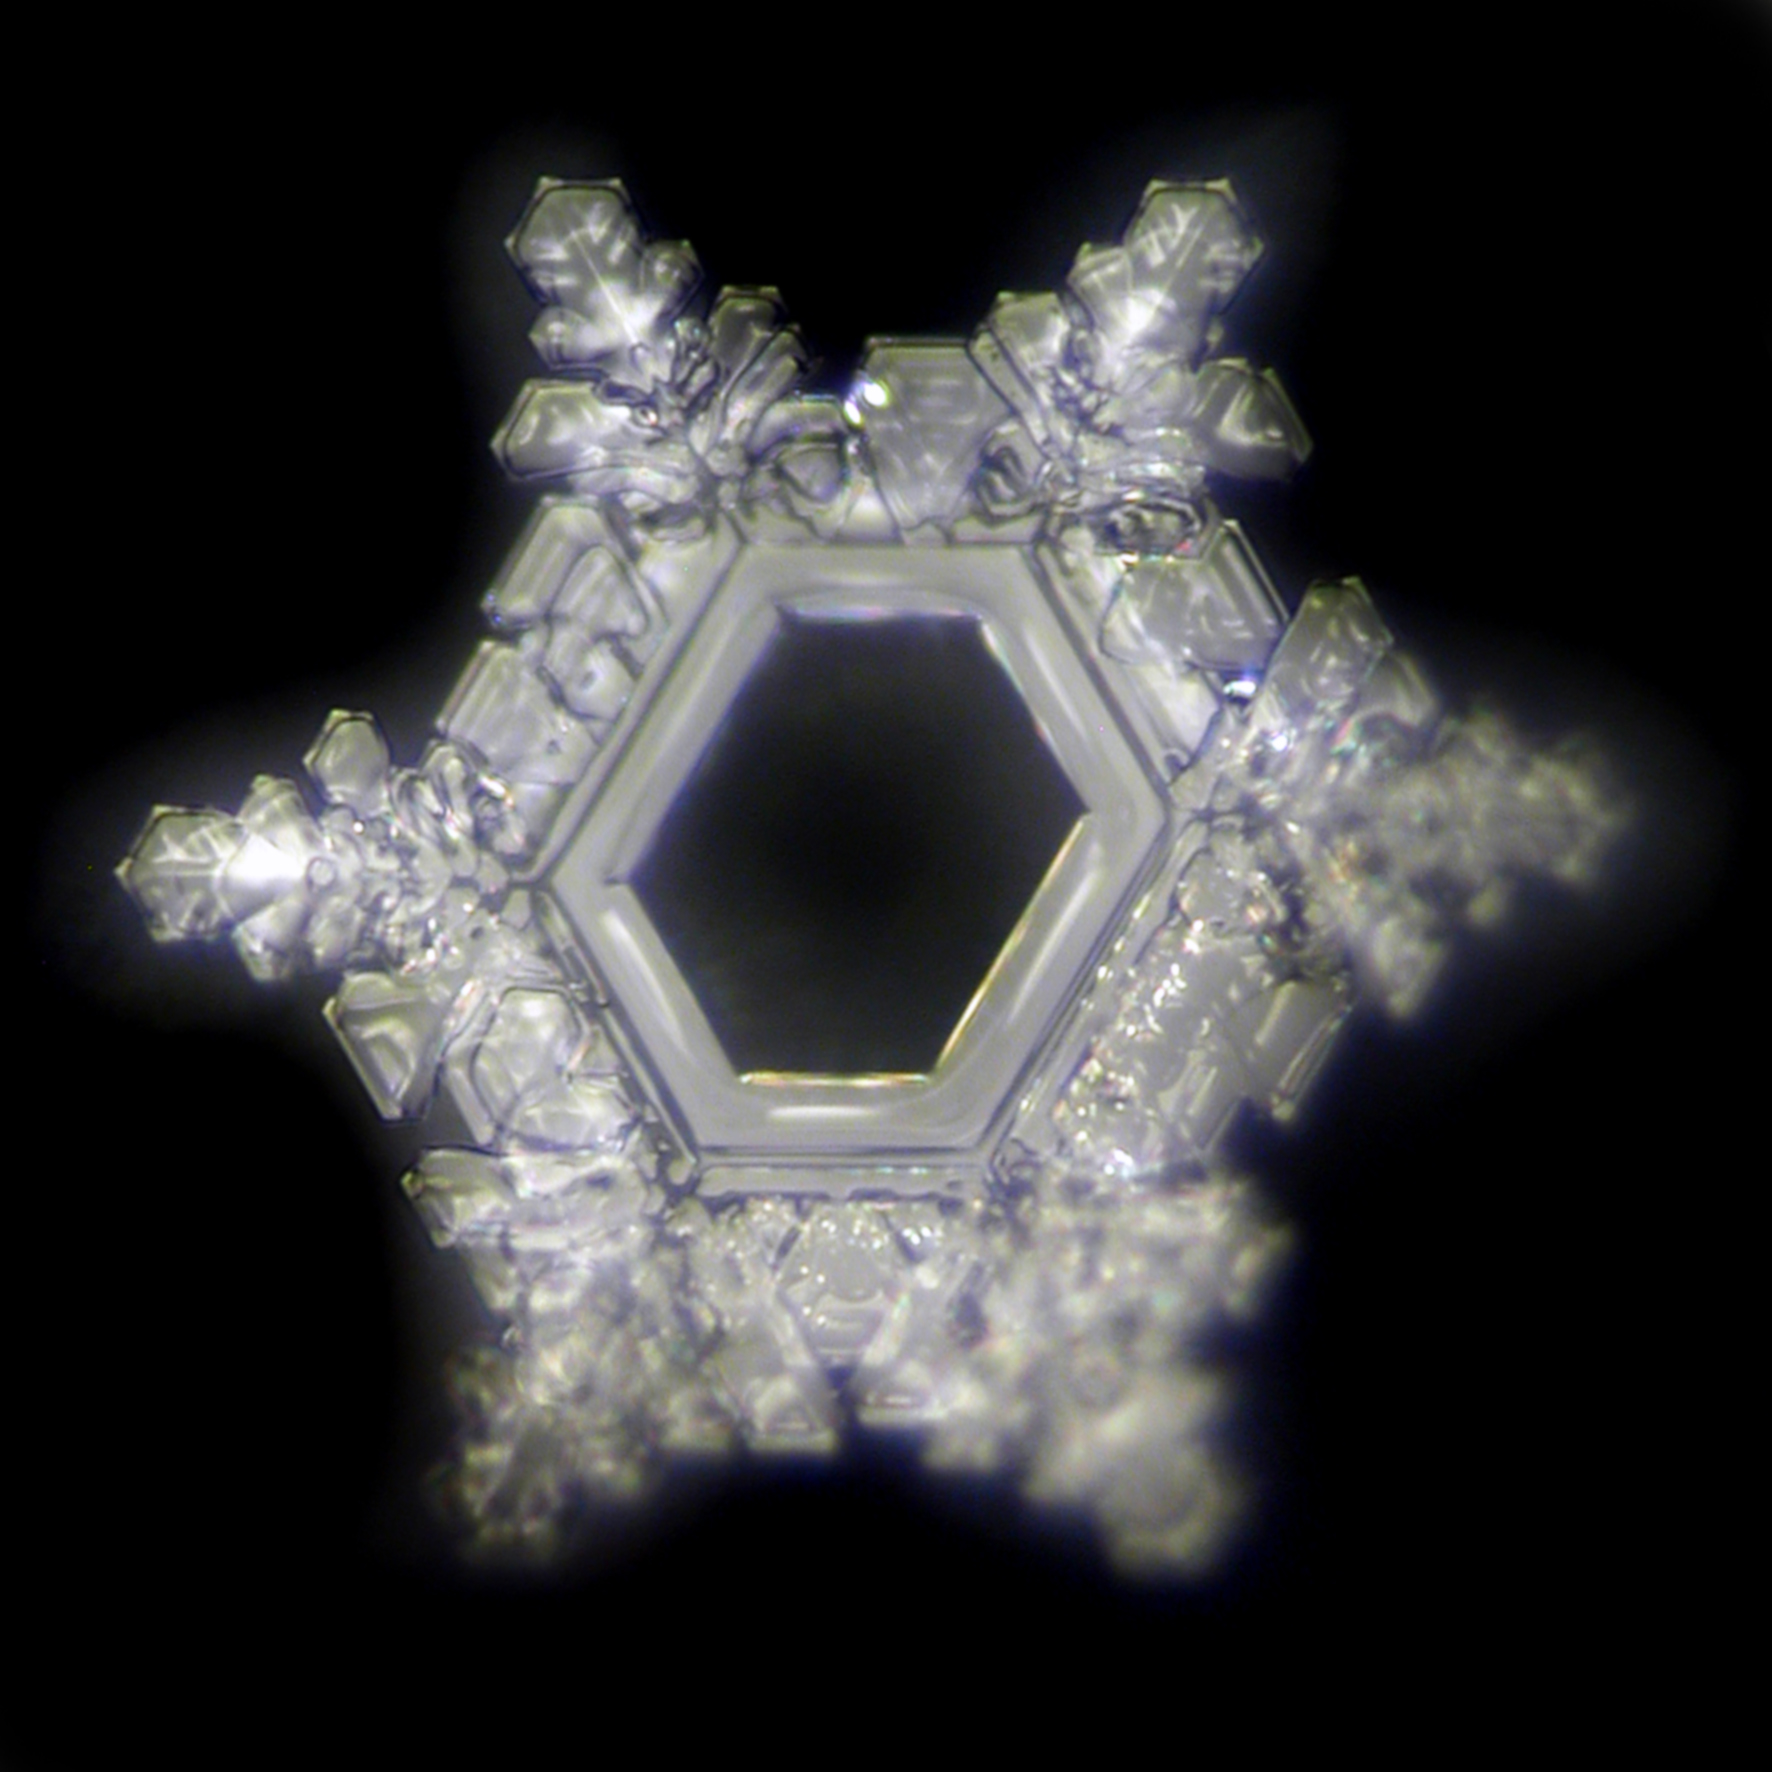 Water crystal image after exposure to a smartphone, which has been harmonized with a Swiss Harmony BioPatch.